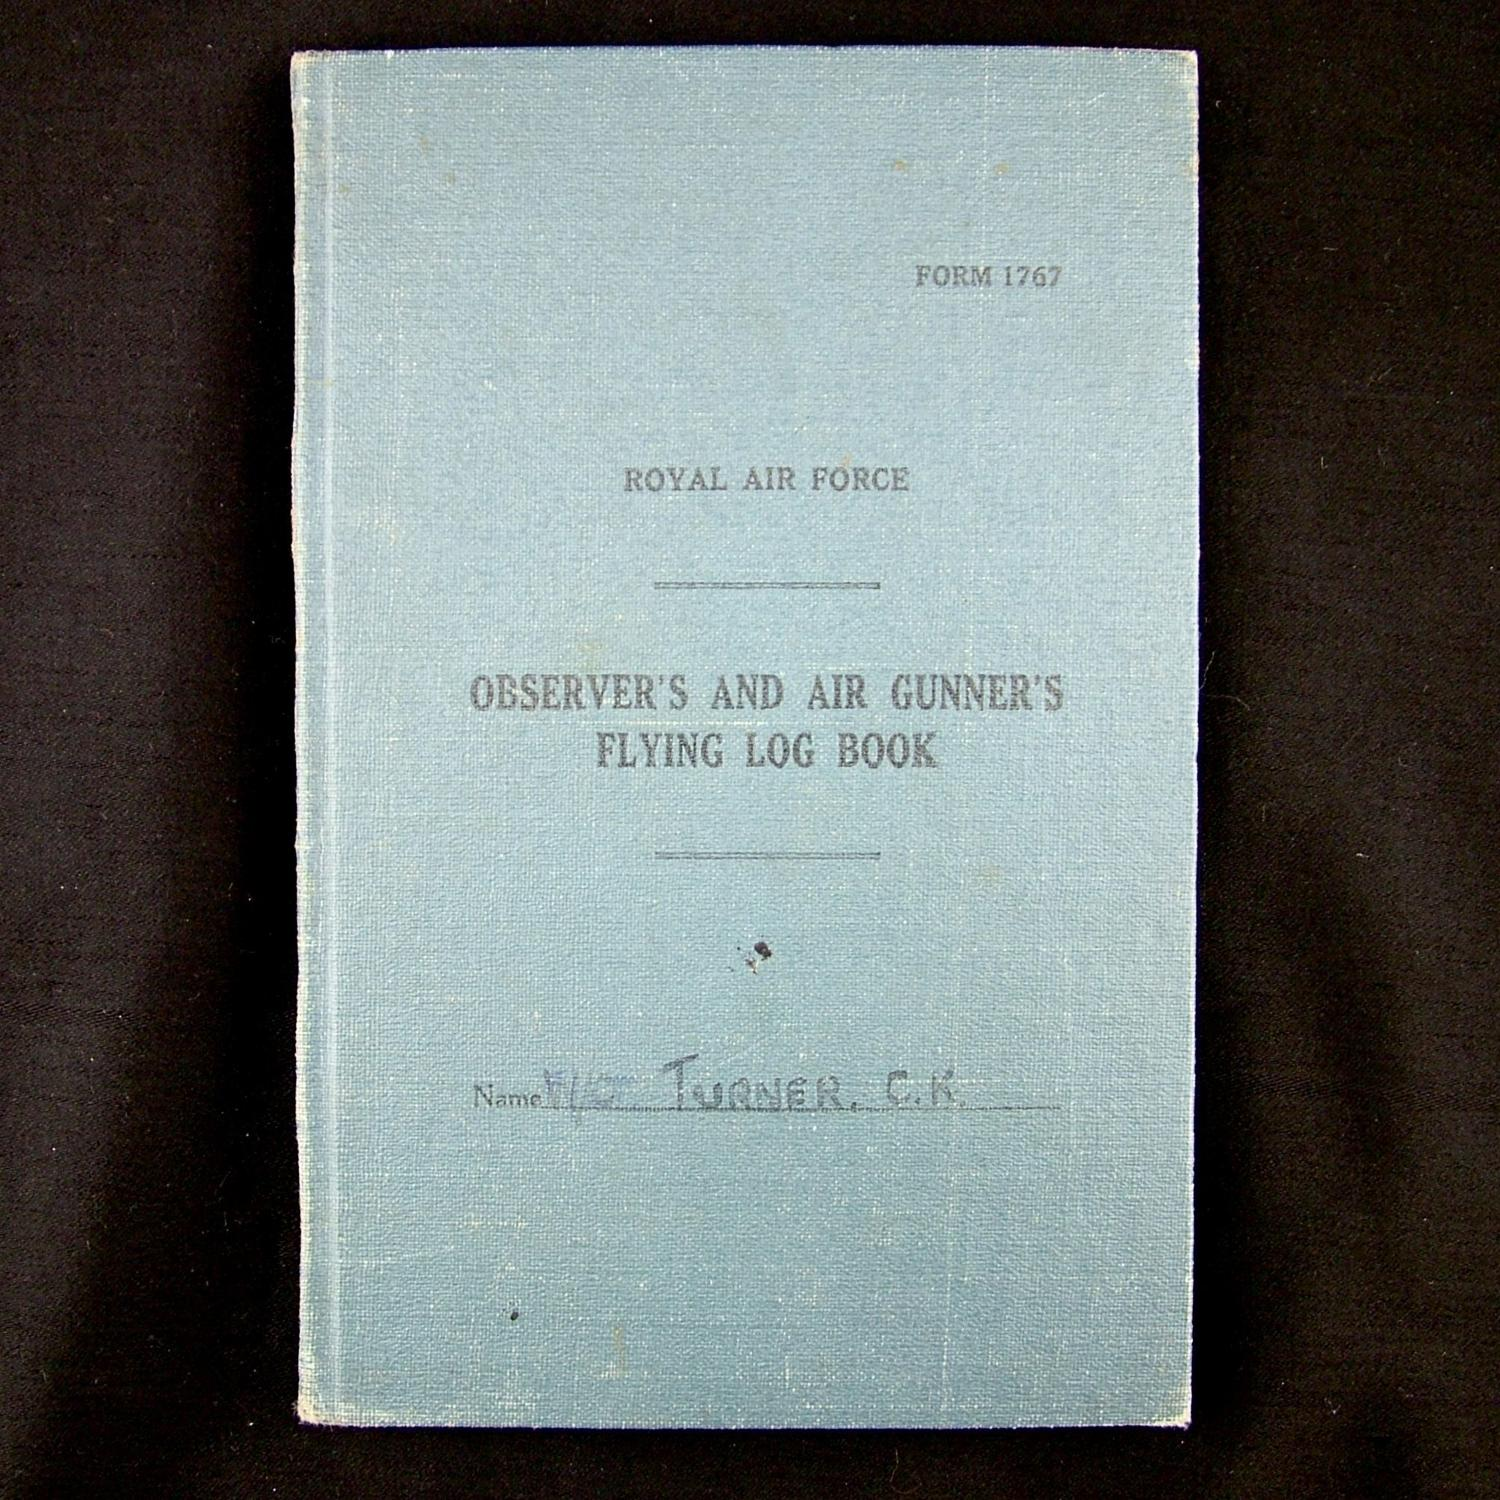 RAF wireless operator / air gunner's log book